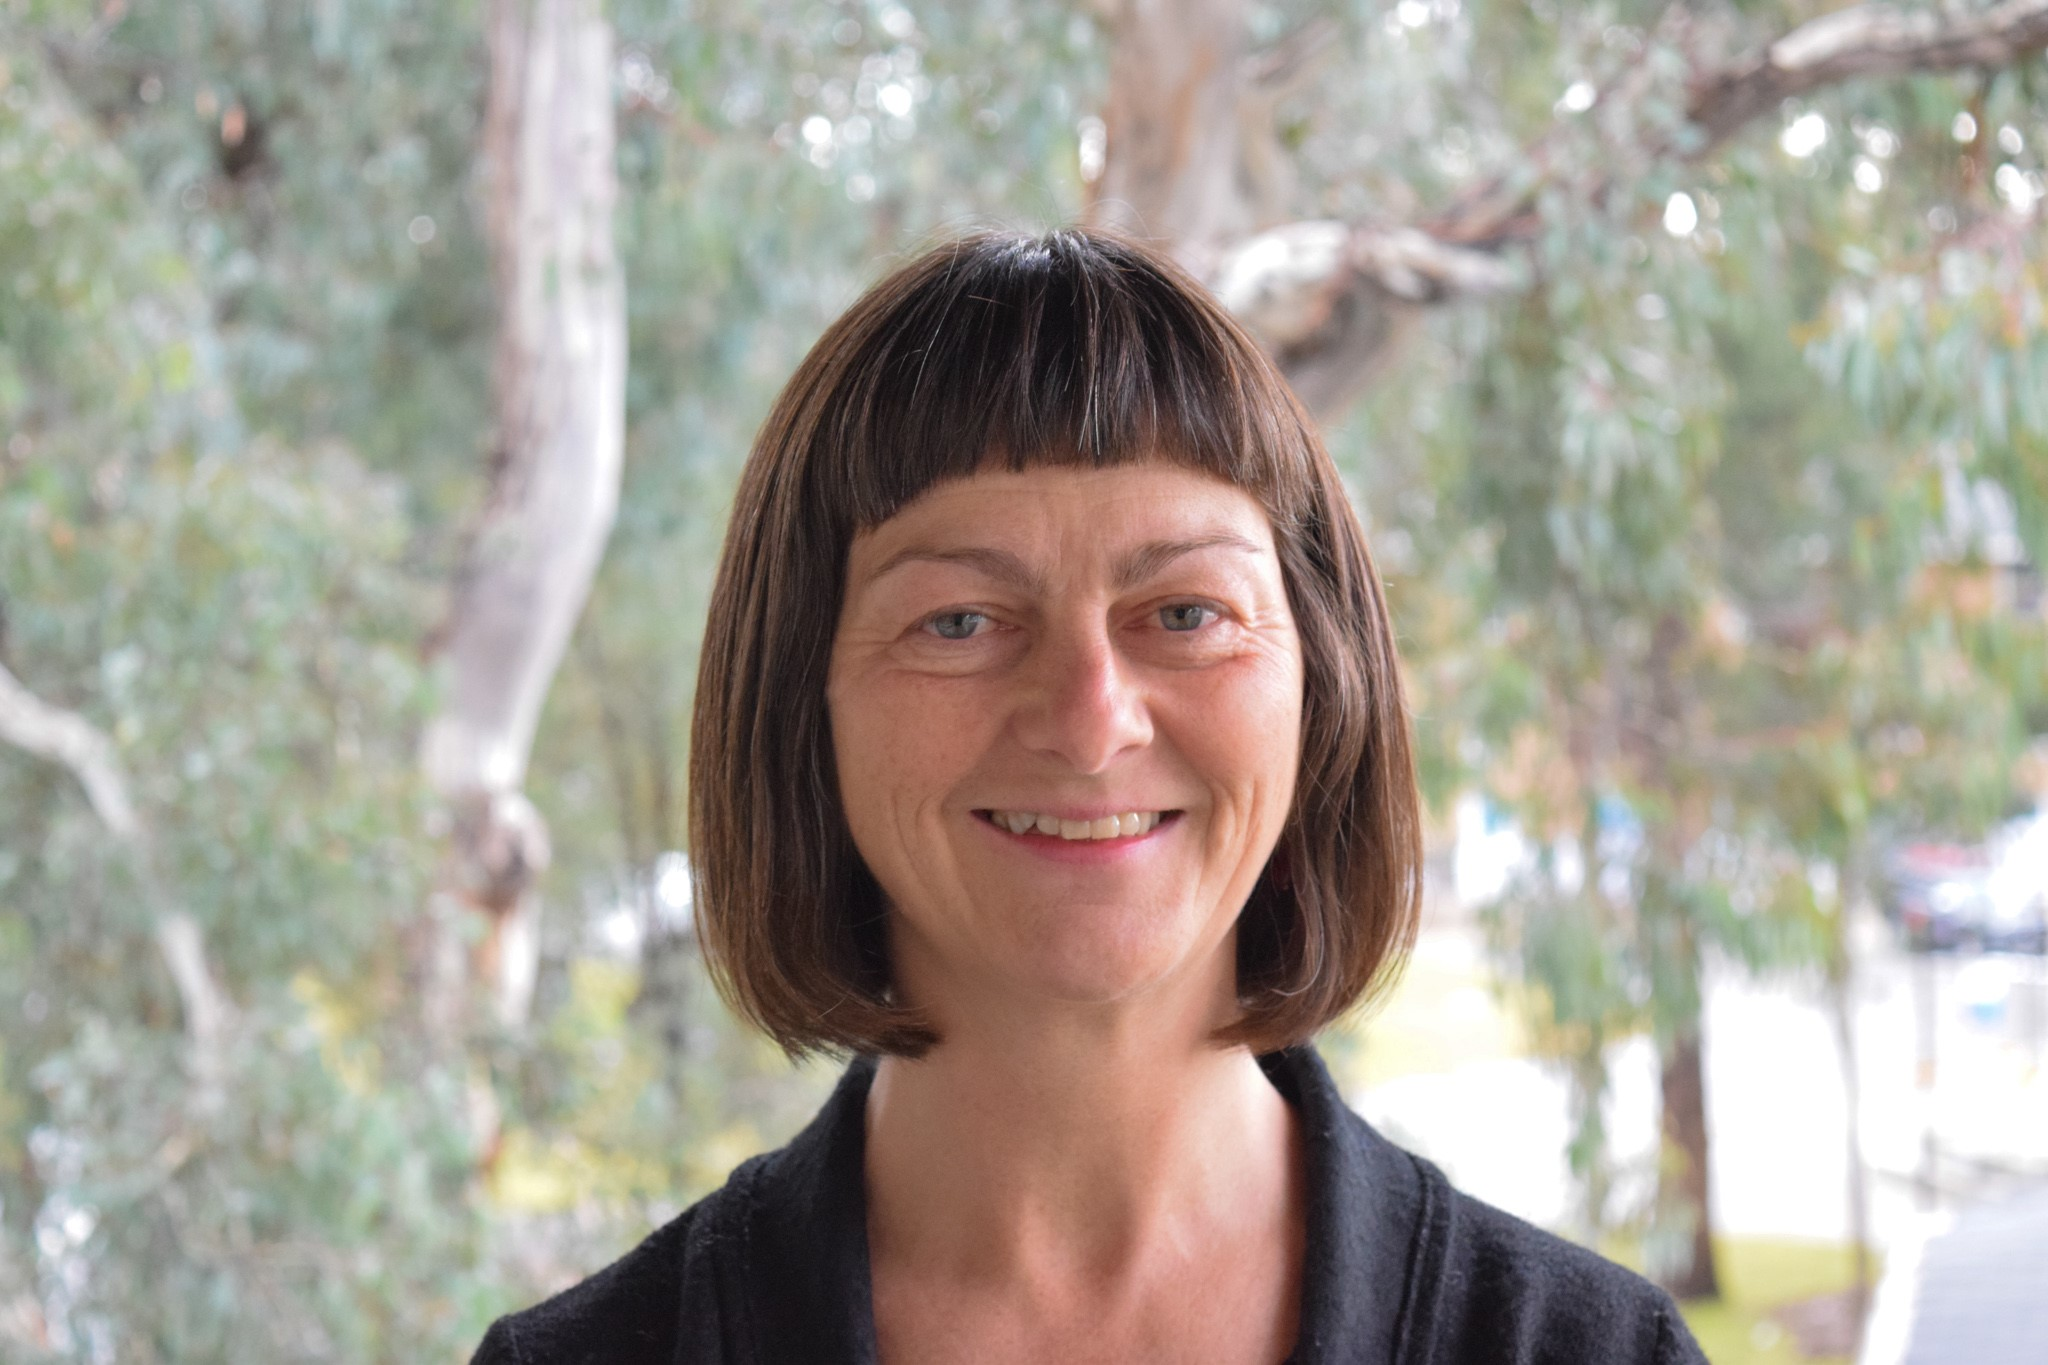 Professor Sharon Friel smiles and looks at the camera. The background features trees.